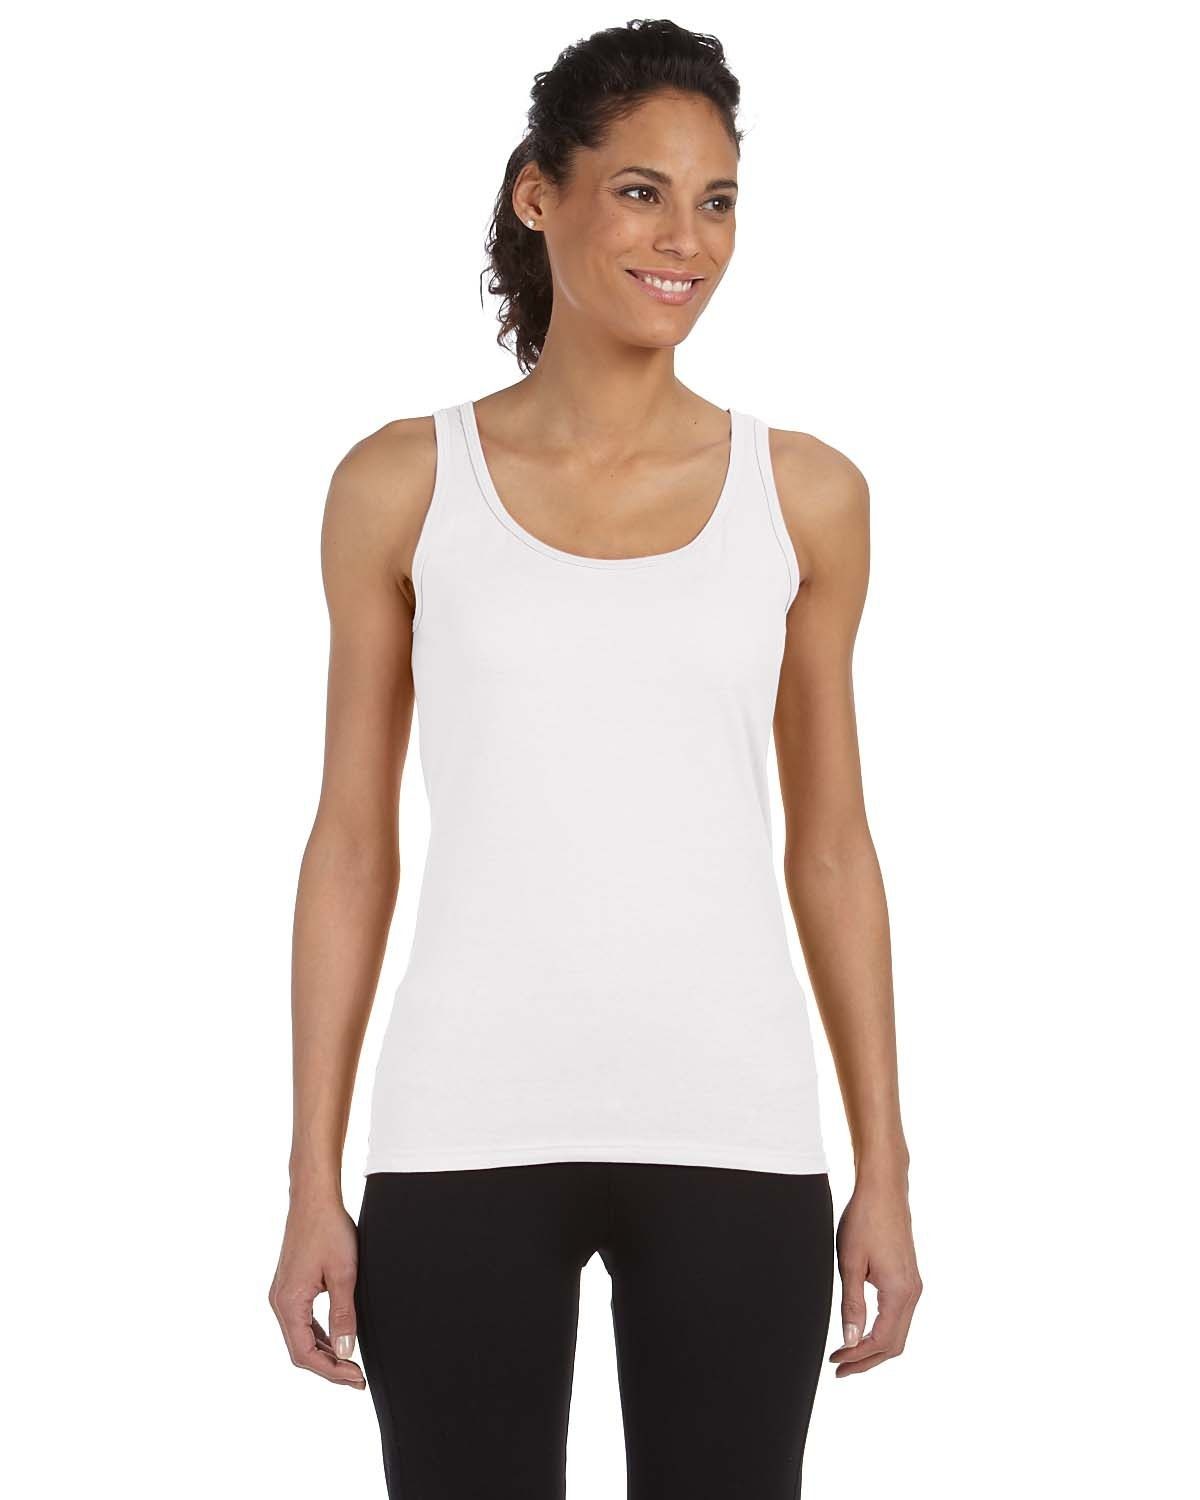 A woman's shirt should have the right fit. Many times, a men's shirt just won't do, she should wear a t-shirt, polo shirt, or tank top that is cut for her and made for her. Blank Shirts offers a wide assortment of women's apparel at wholesale prices.